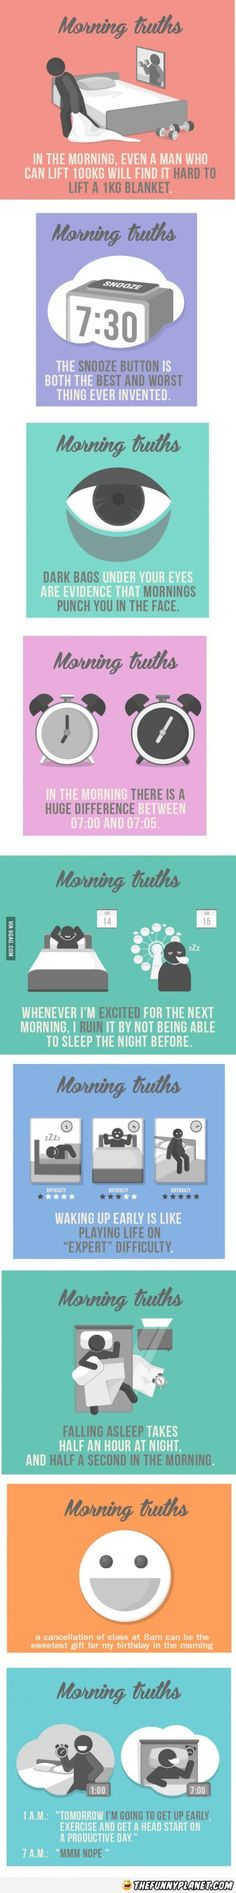 Morning Truths - Must See!